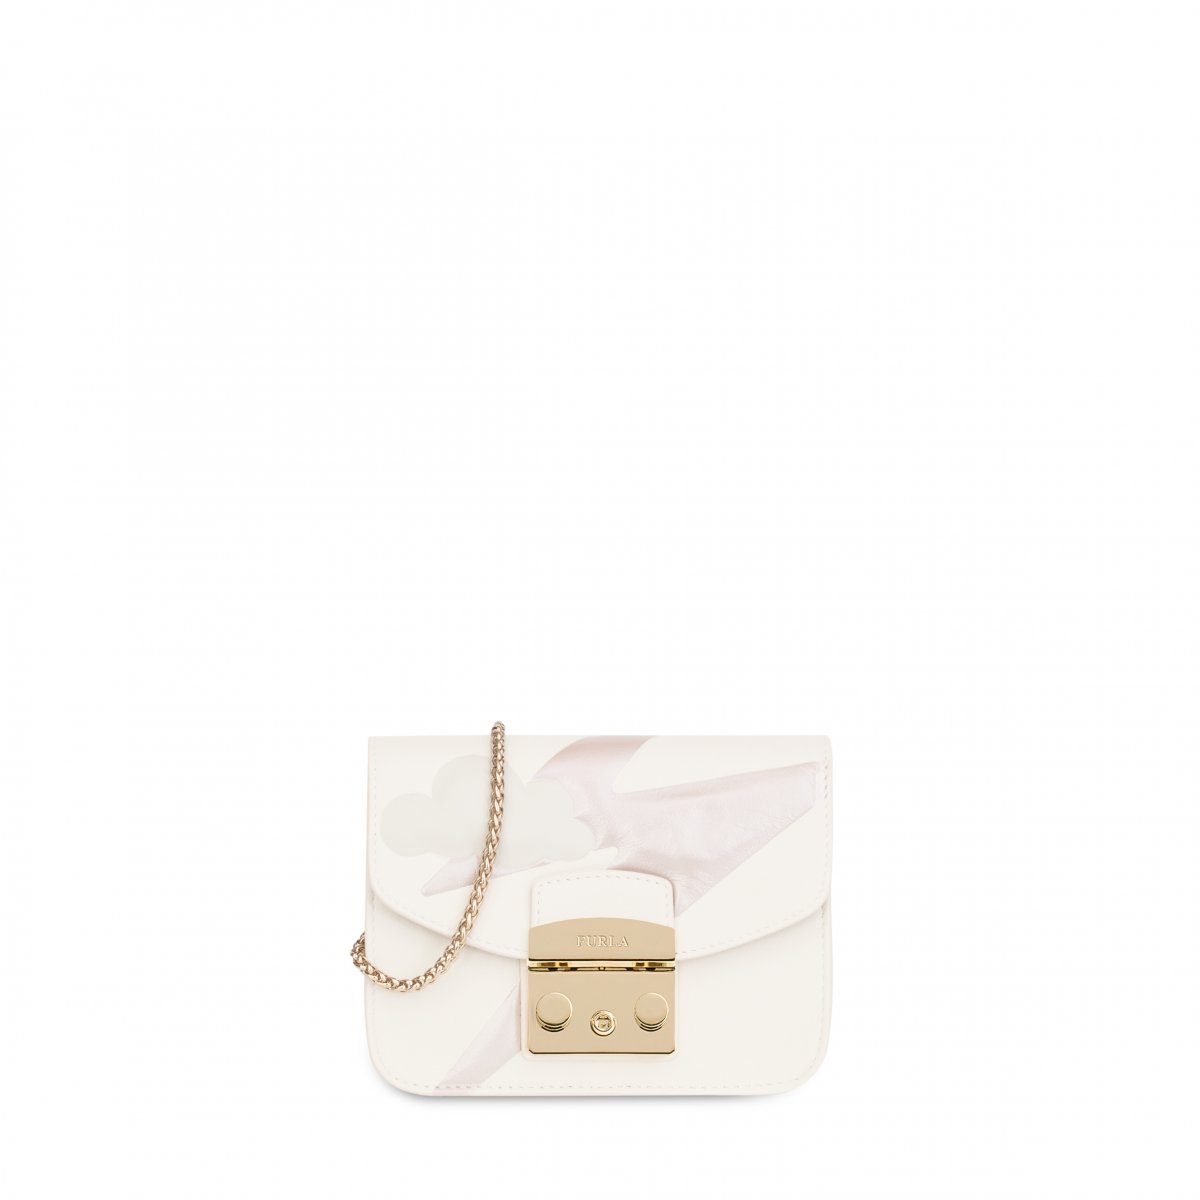 Crossbody kabelka FURLA METROPOLIS FANTASIA MINI CROSSBODY